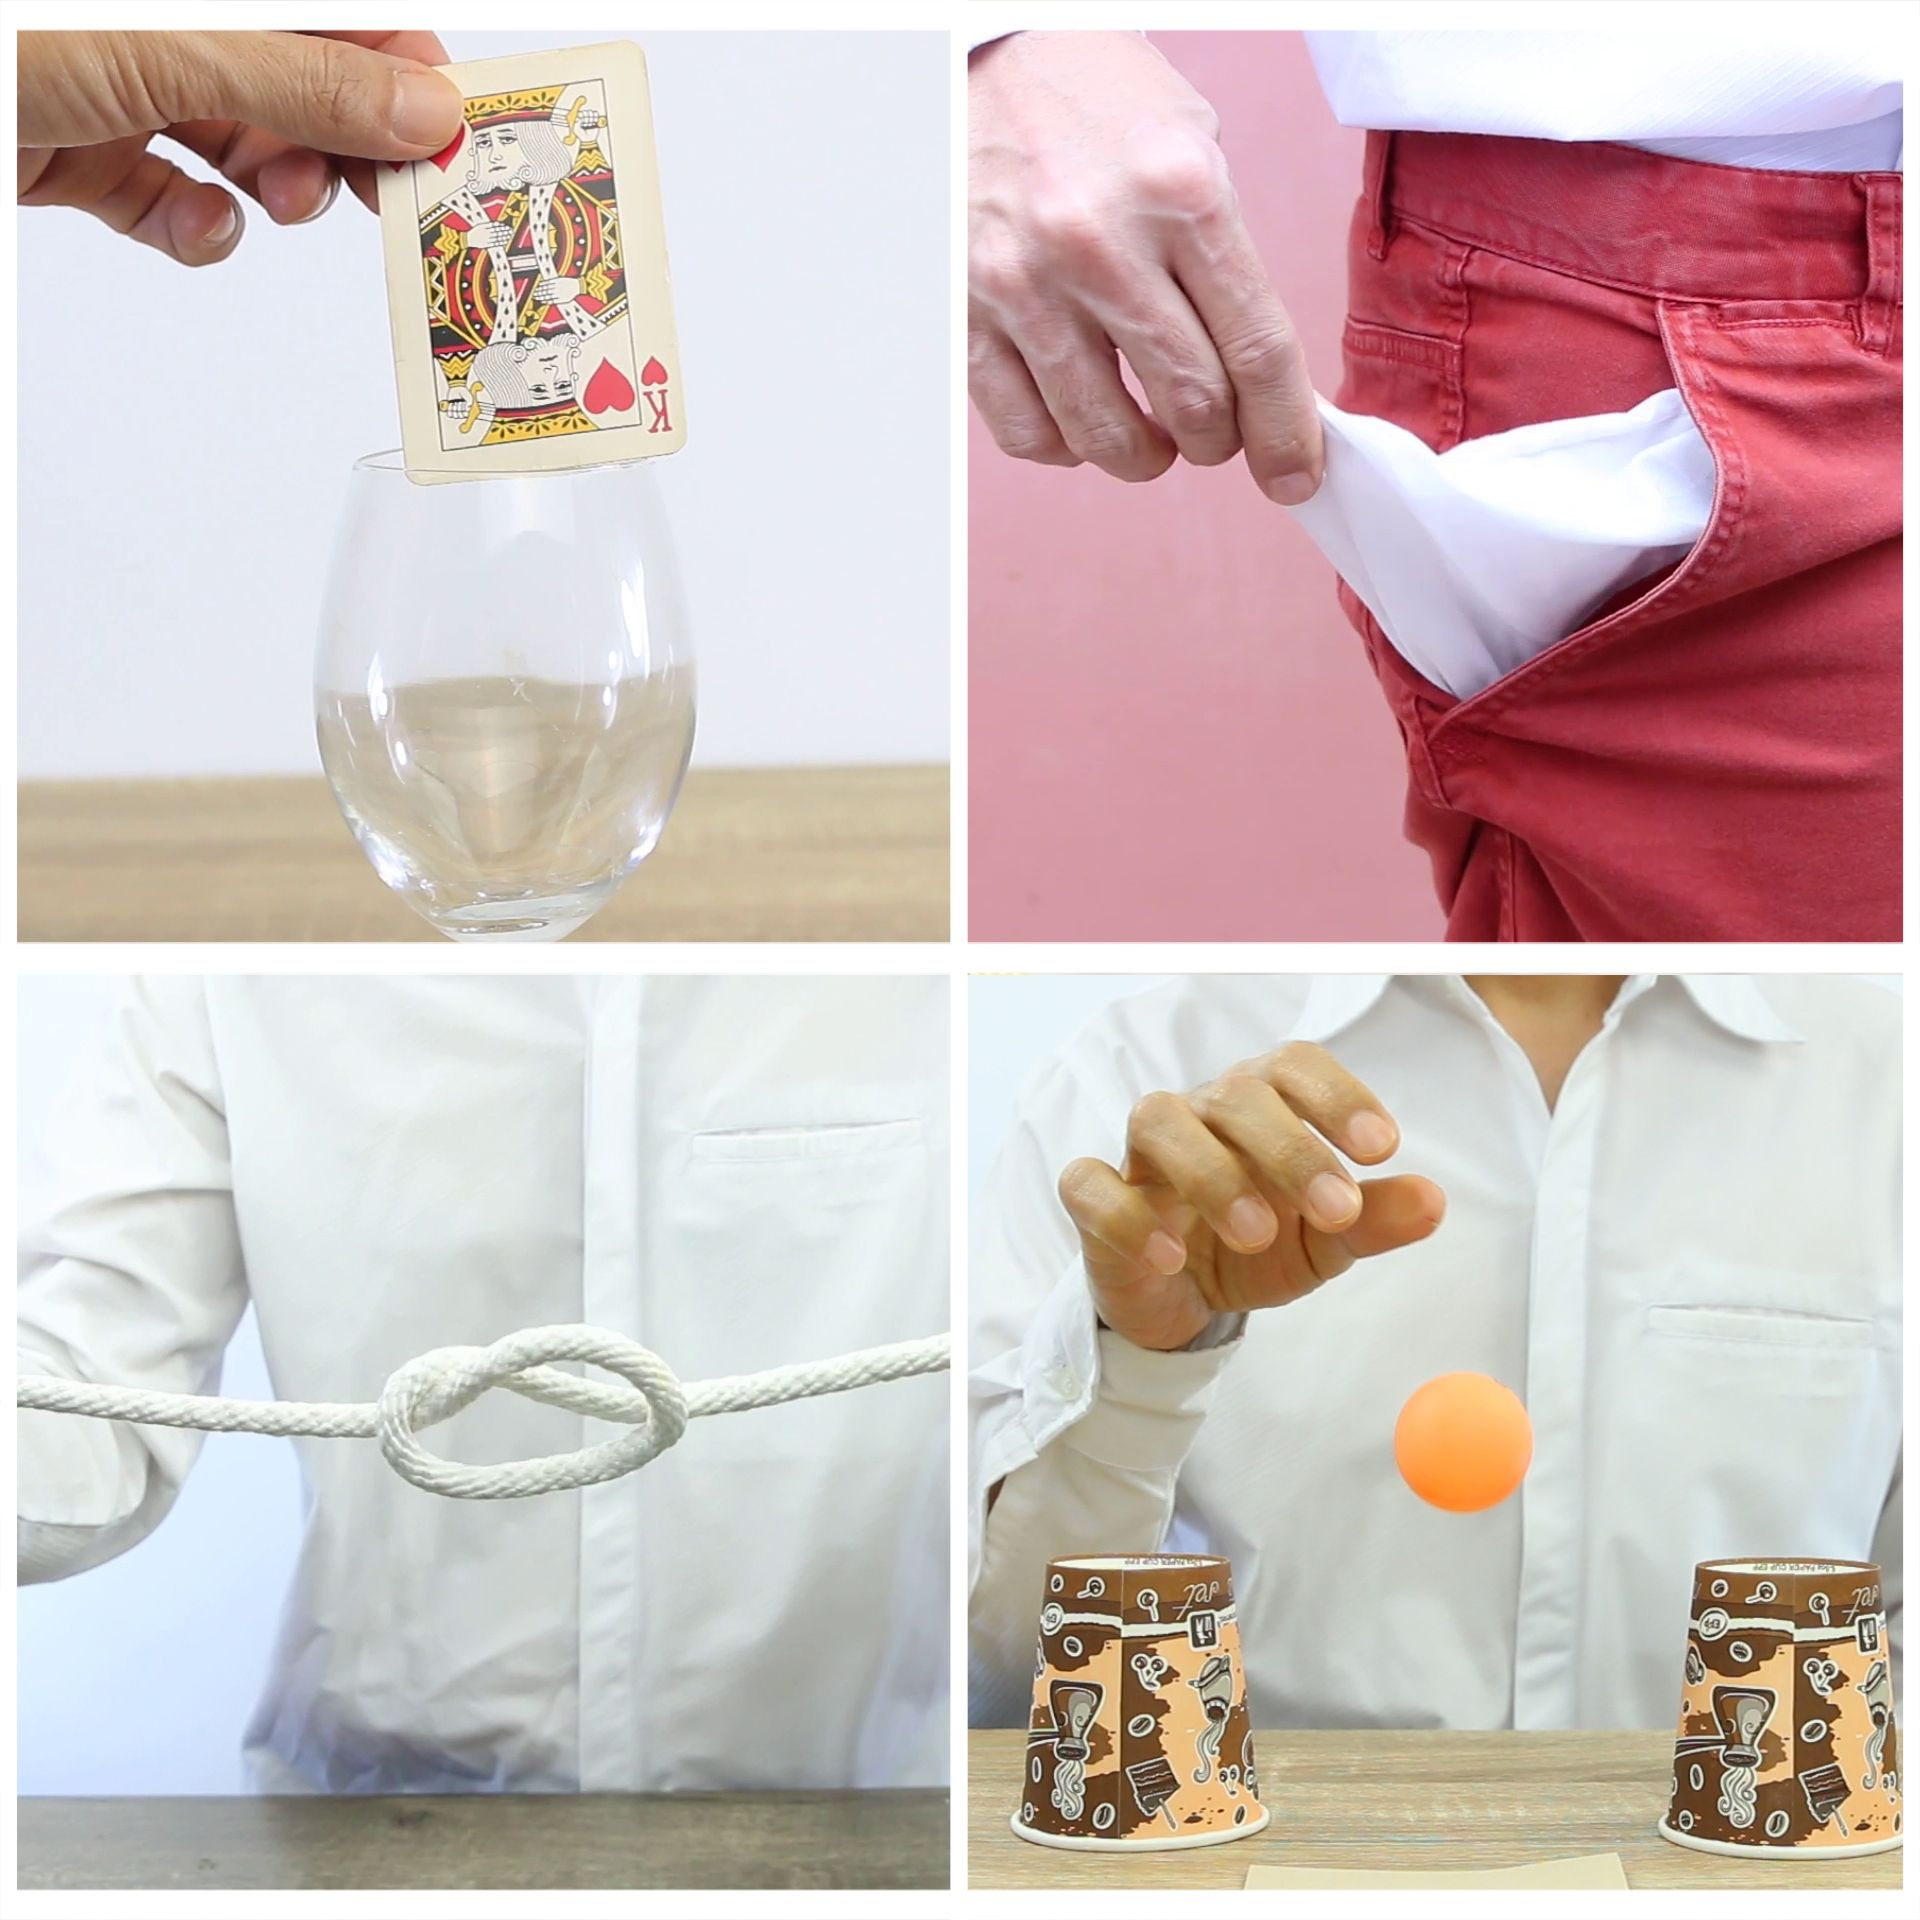 Here are five easy magic tricks that your can use to astound friends and family They are extremely easy to learn. Hope you enjoy.